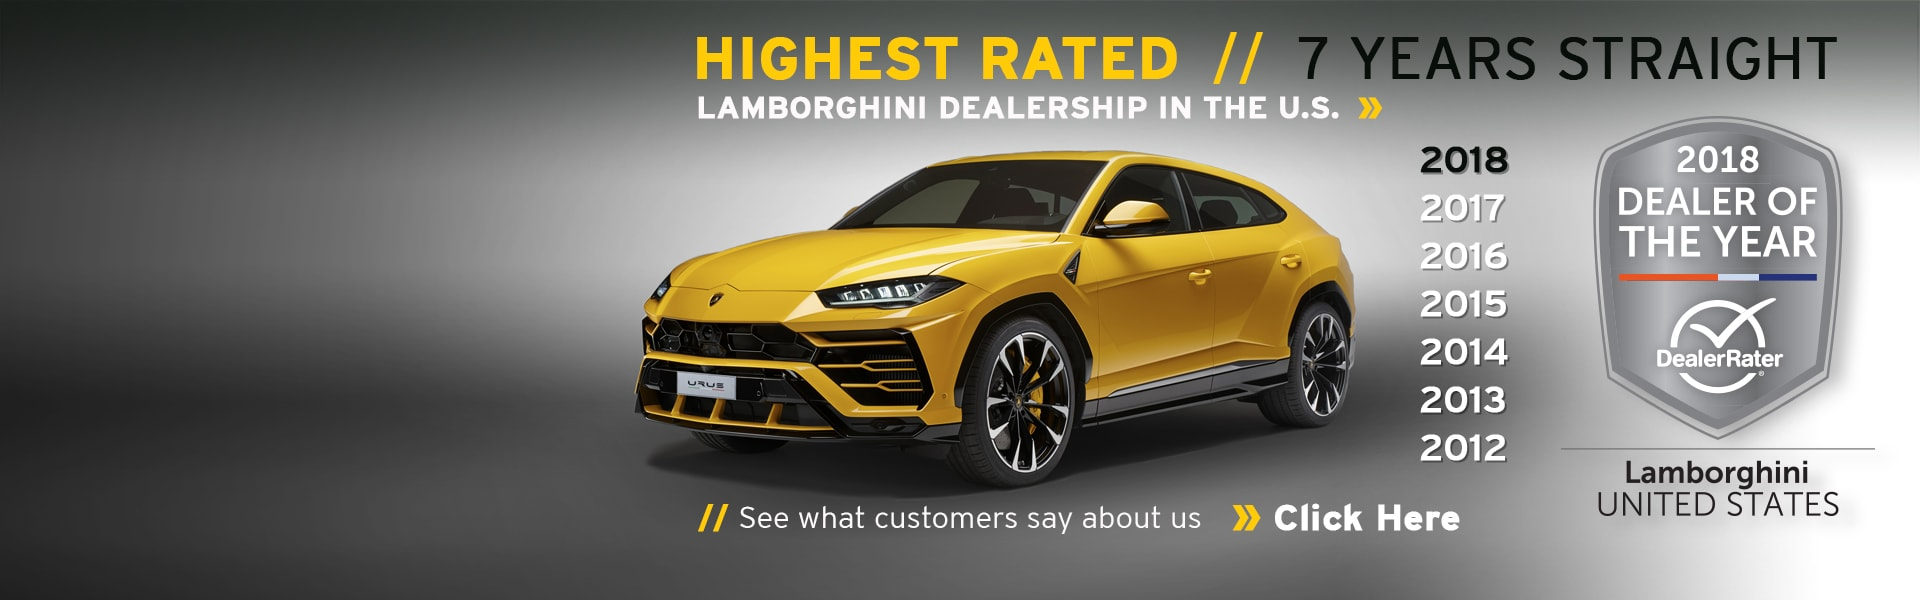 Lamborghini Dallas: Lamborghini Dealership near Dallas TX ...